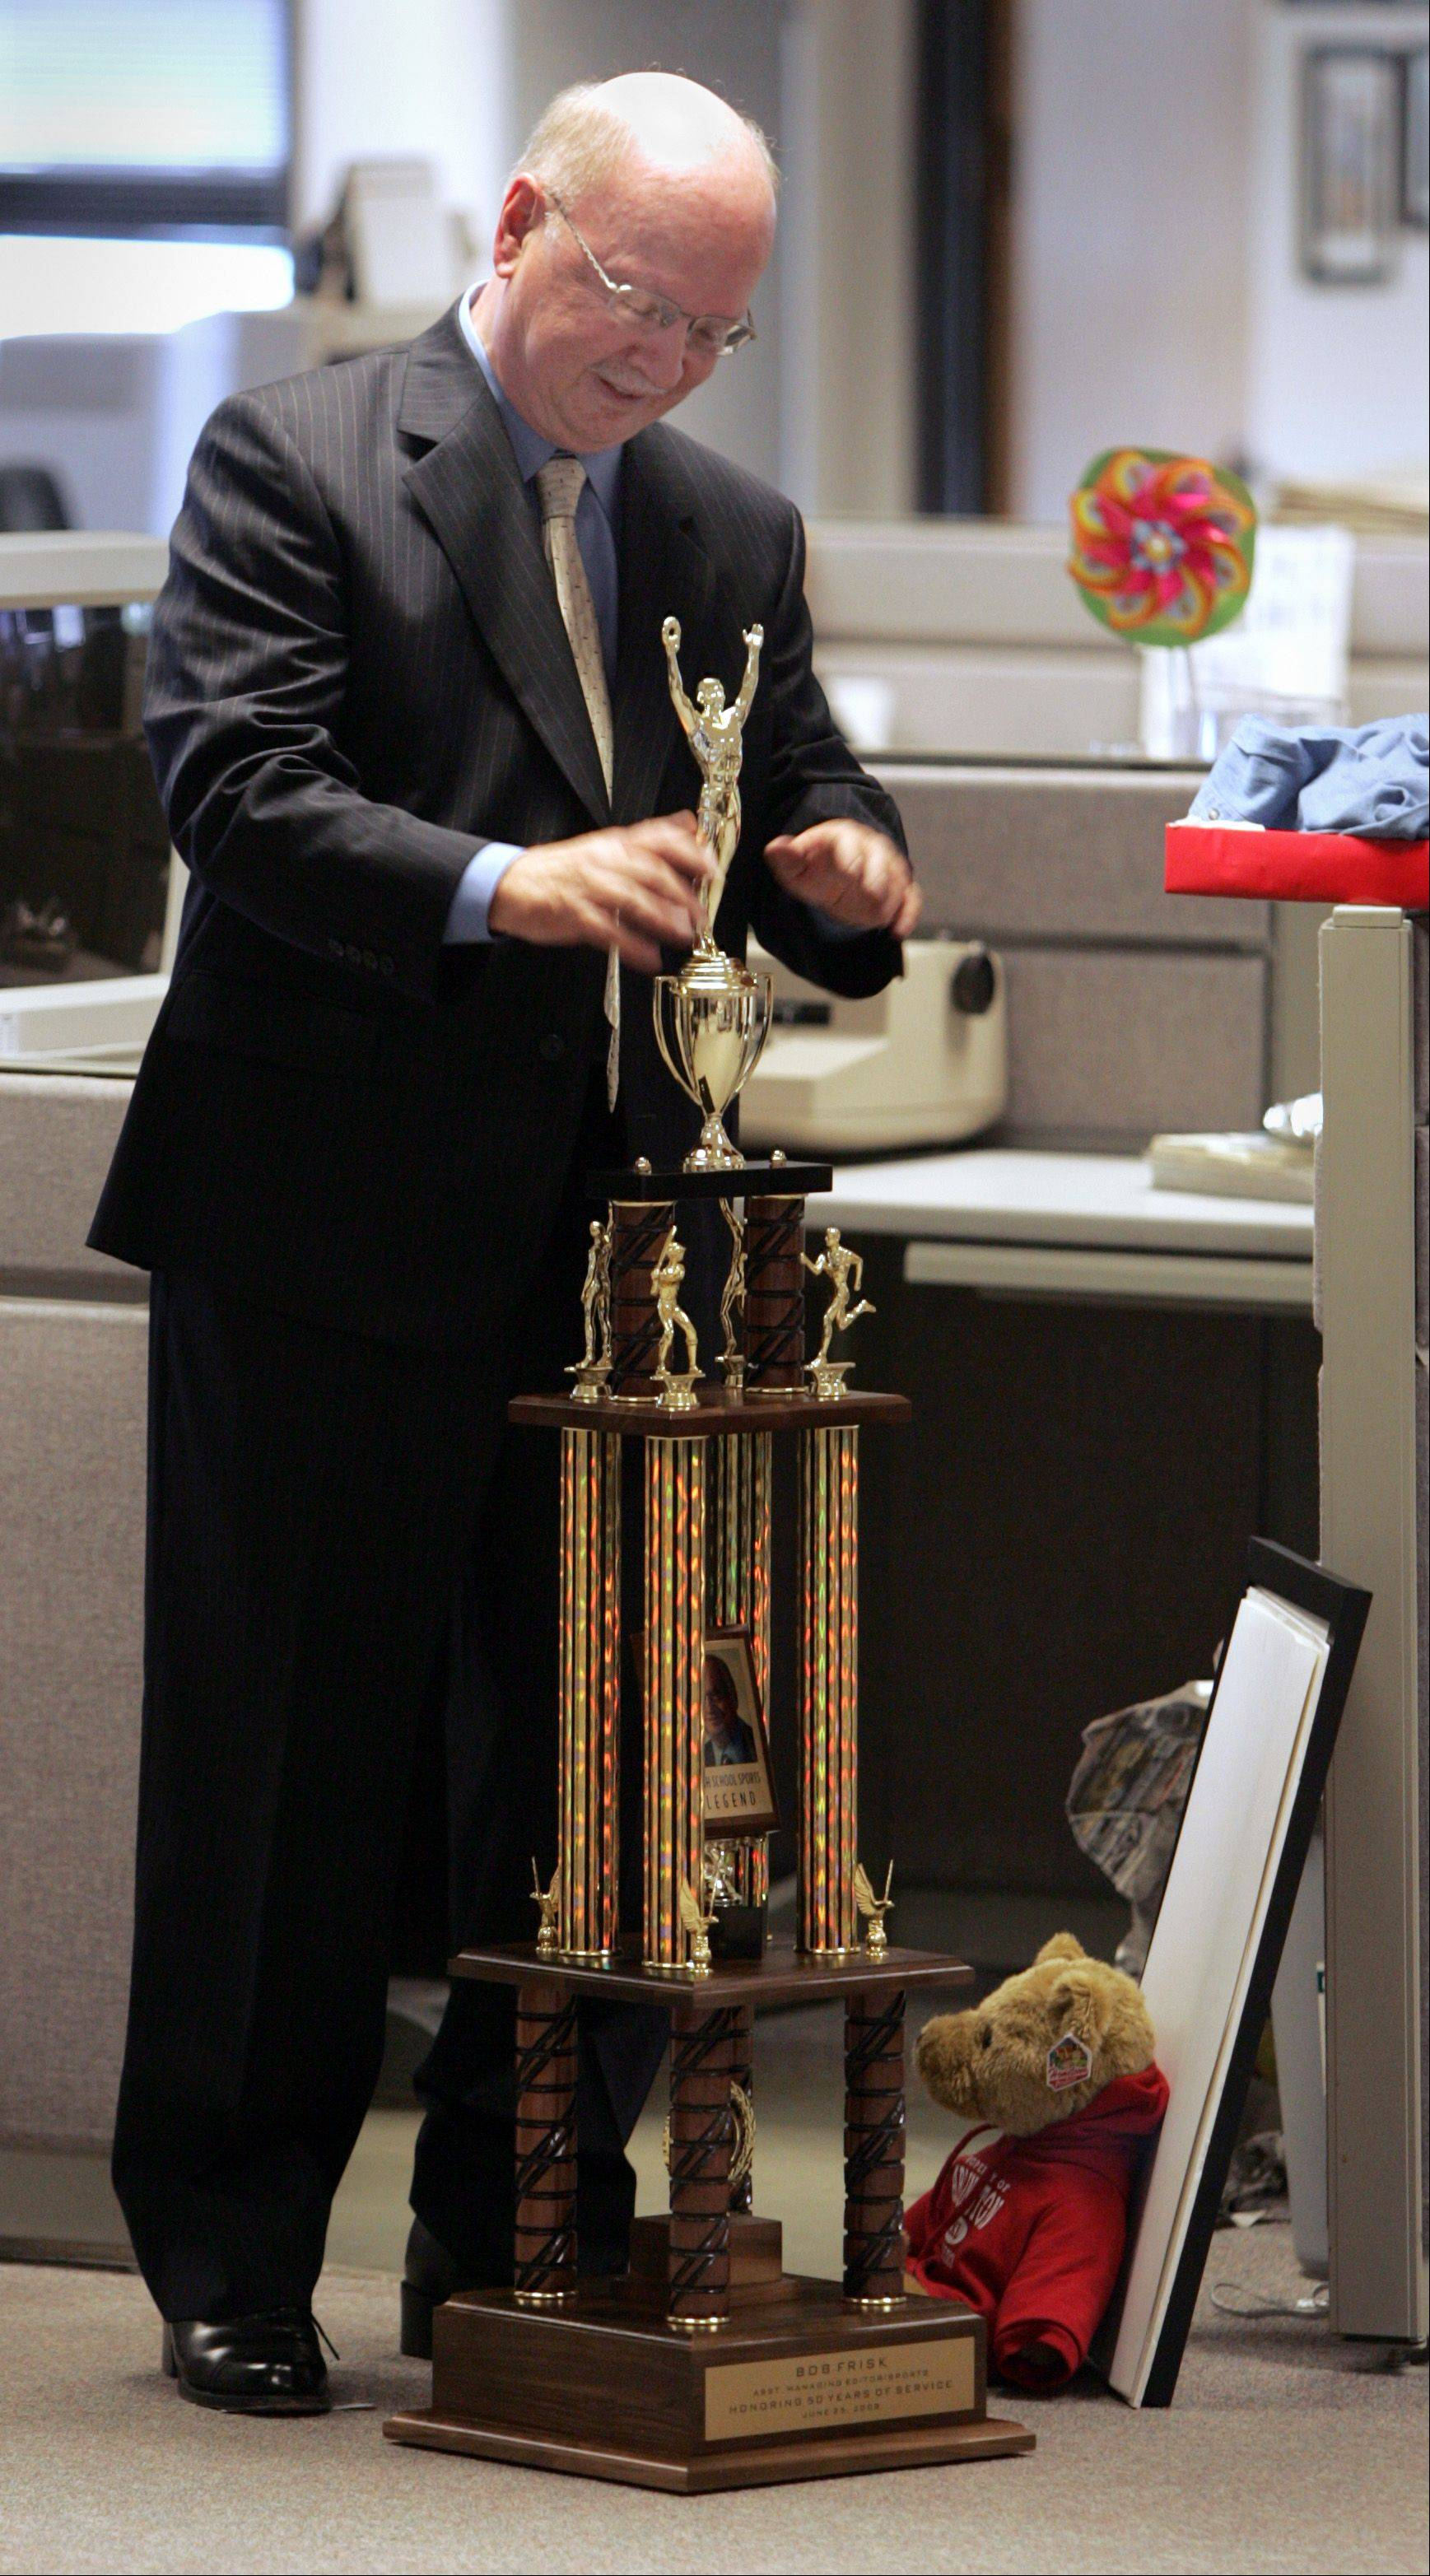 Bob Frisk, here accepting his very own Paddock Cup trophy during a ceremony to honor his 50th anniversary with the Daily Herald in 2008, will be honored again on Friday at Prospect. He's been selected as as inaugural choice for the IHSA's Distinguished Media Service award.